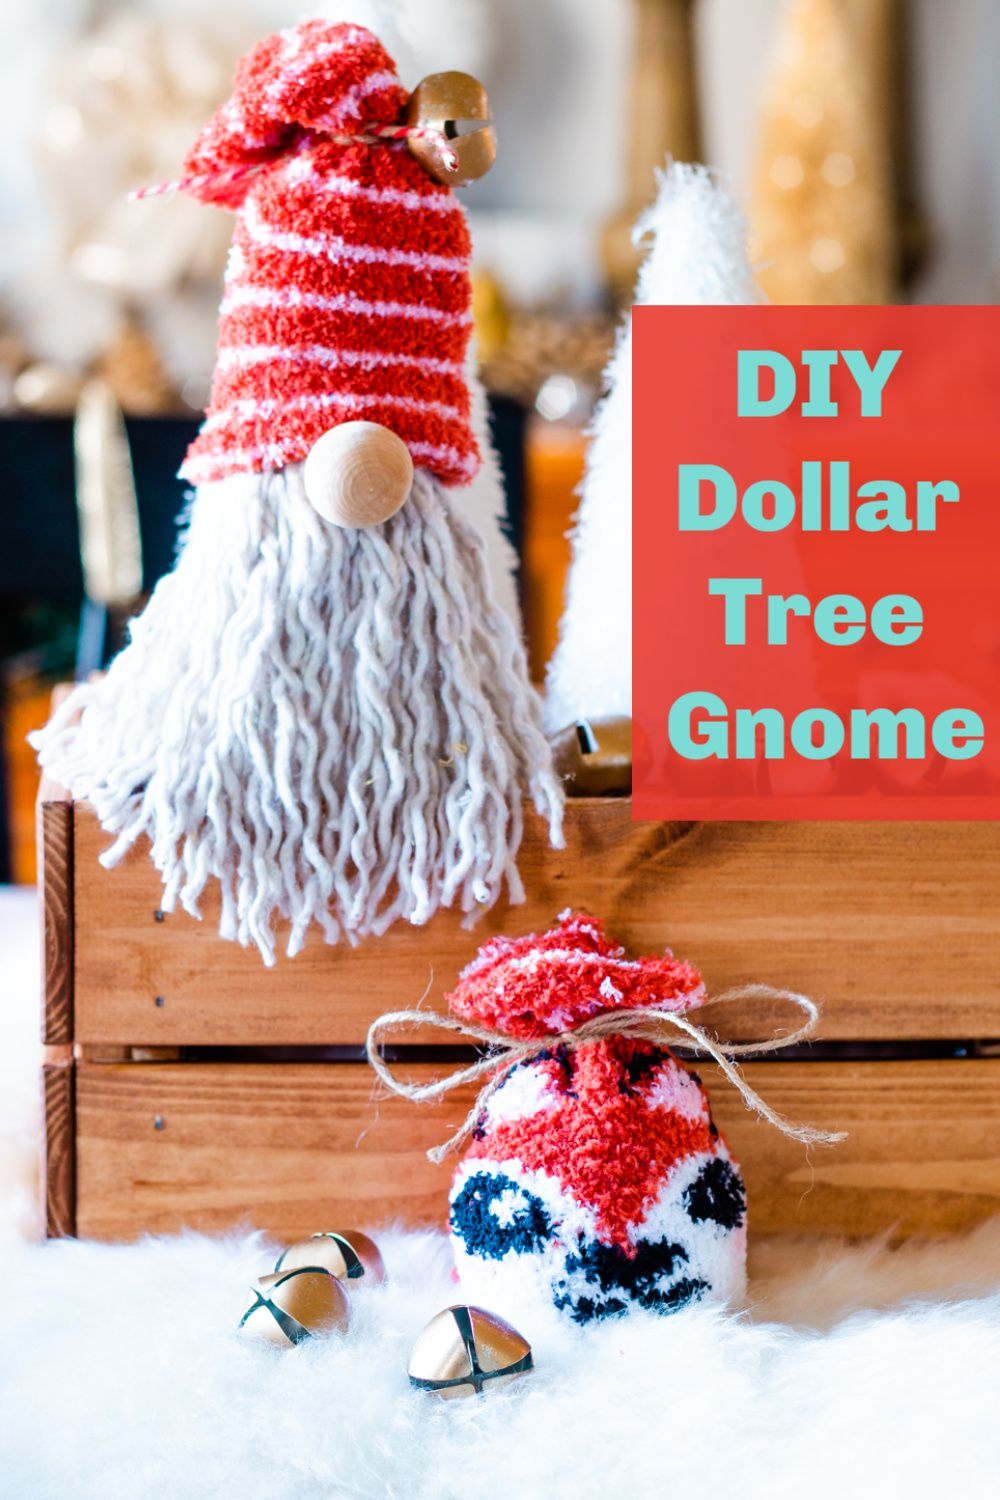 DIY Dollar Tree Gnome for Christmas Christmas